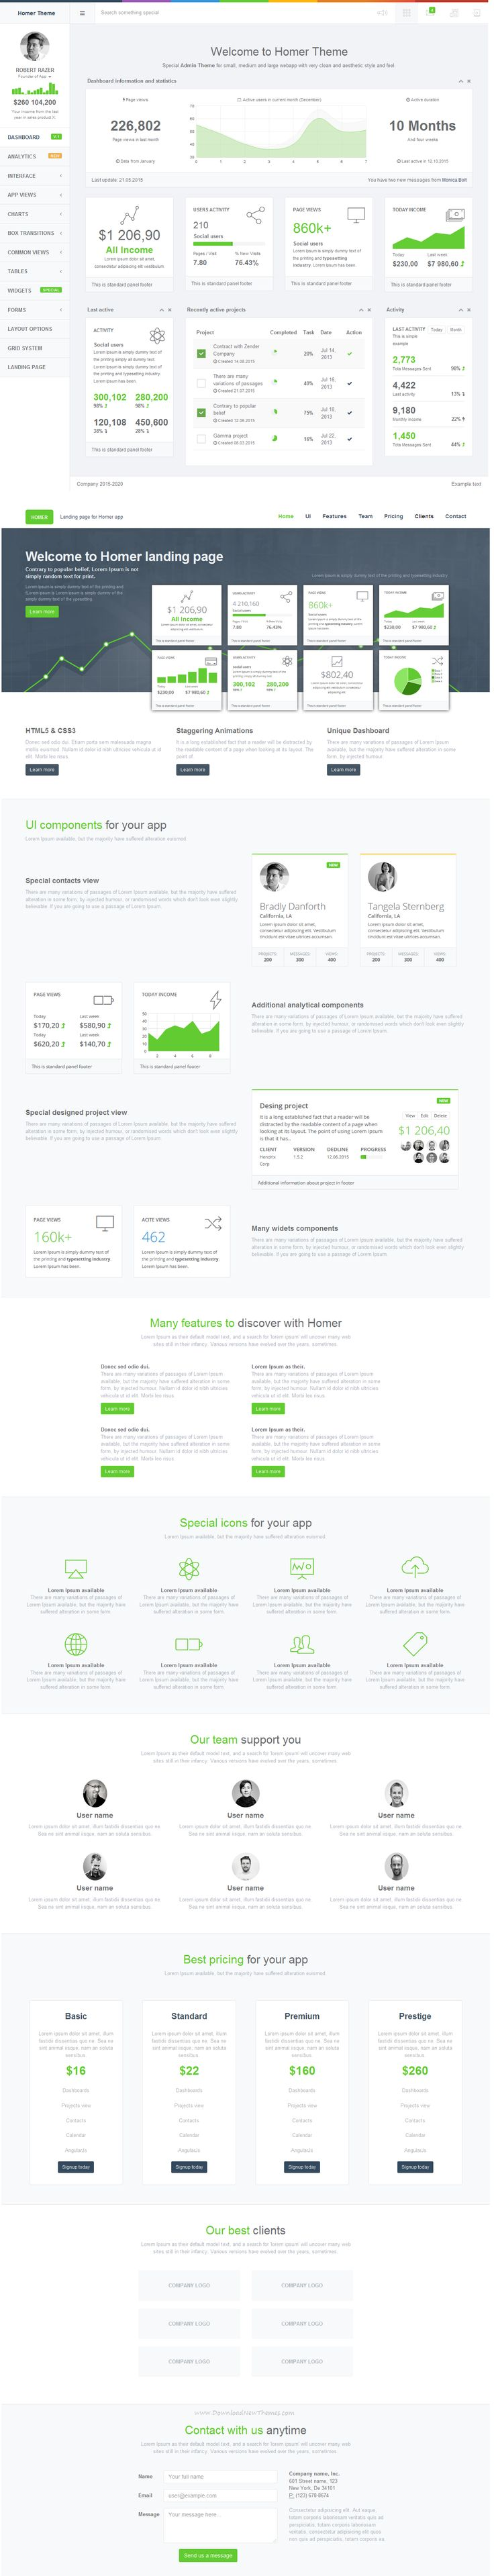 HOMER Admin Theme is a premium admin dashboard theme with flat design concept. It is fully responsive admin dashboard template built with Bootstrap 3+ Framework, HTML5 and CSS3, LESS, Media query, AngularJS, Grunt and Bower. It has a main collection of reusable UI components and integrated with latest jQuery plugins. It can be used for all type of small and medium webapp. It comes with Landing Page Template #webdesign #admintemplate